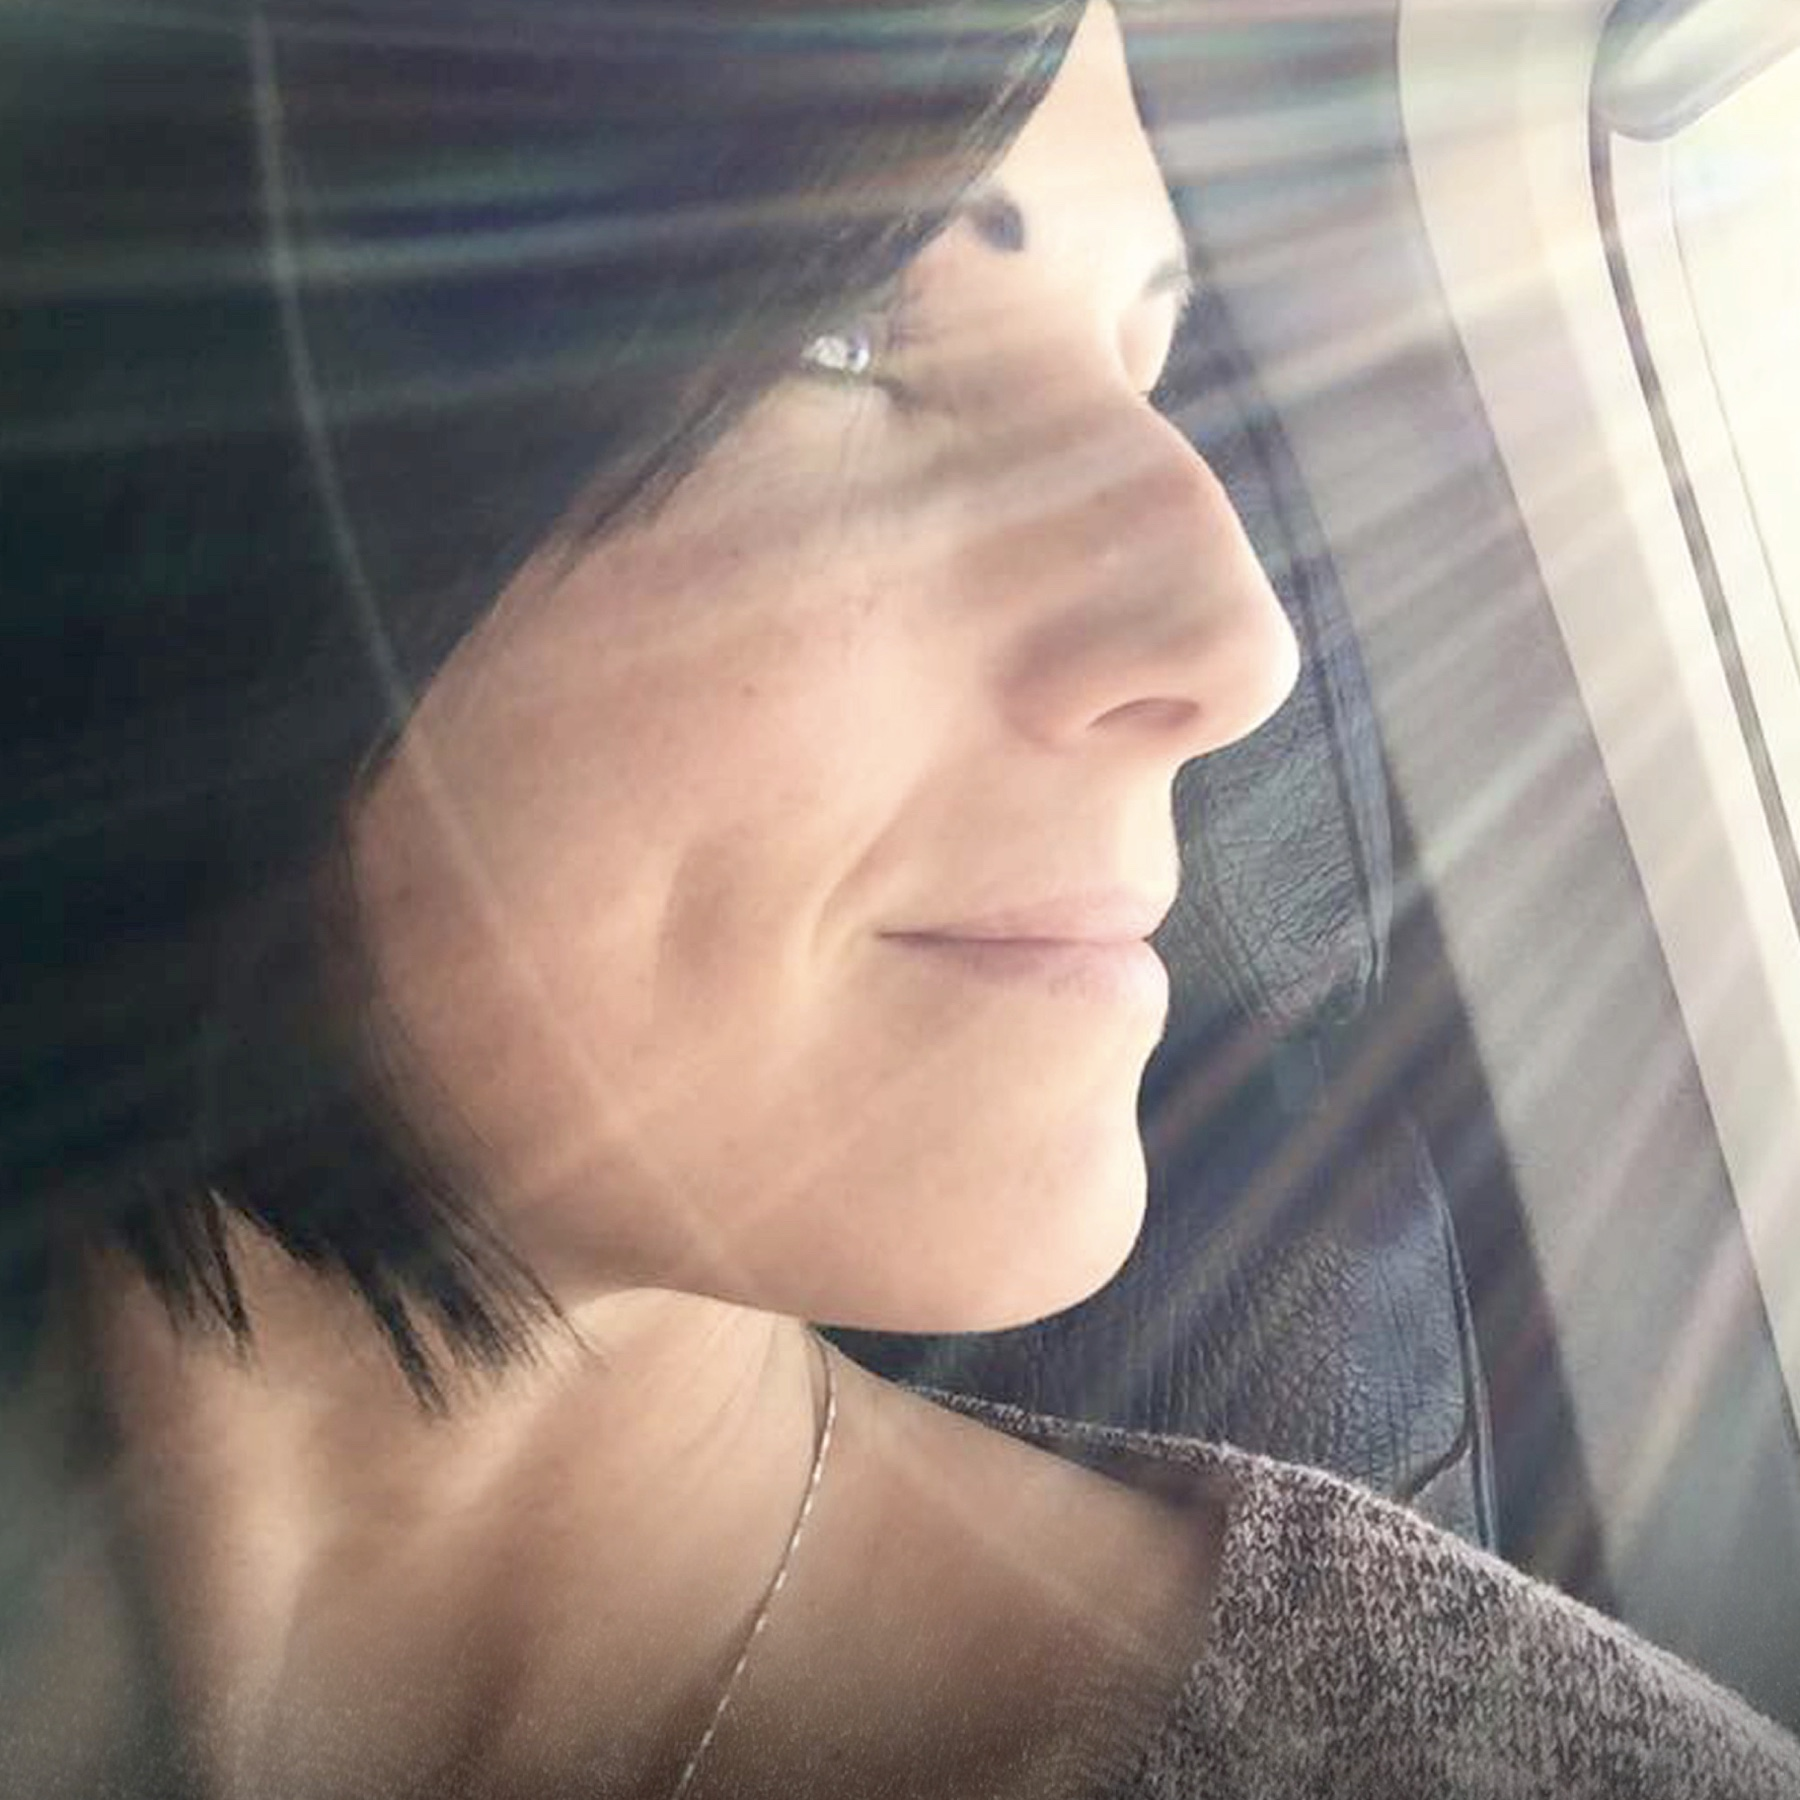 woman with brown hair gazing right out an airplane window with the sun shining in